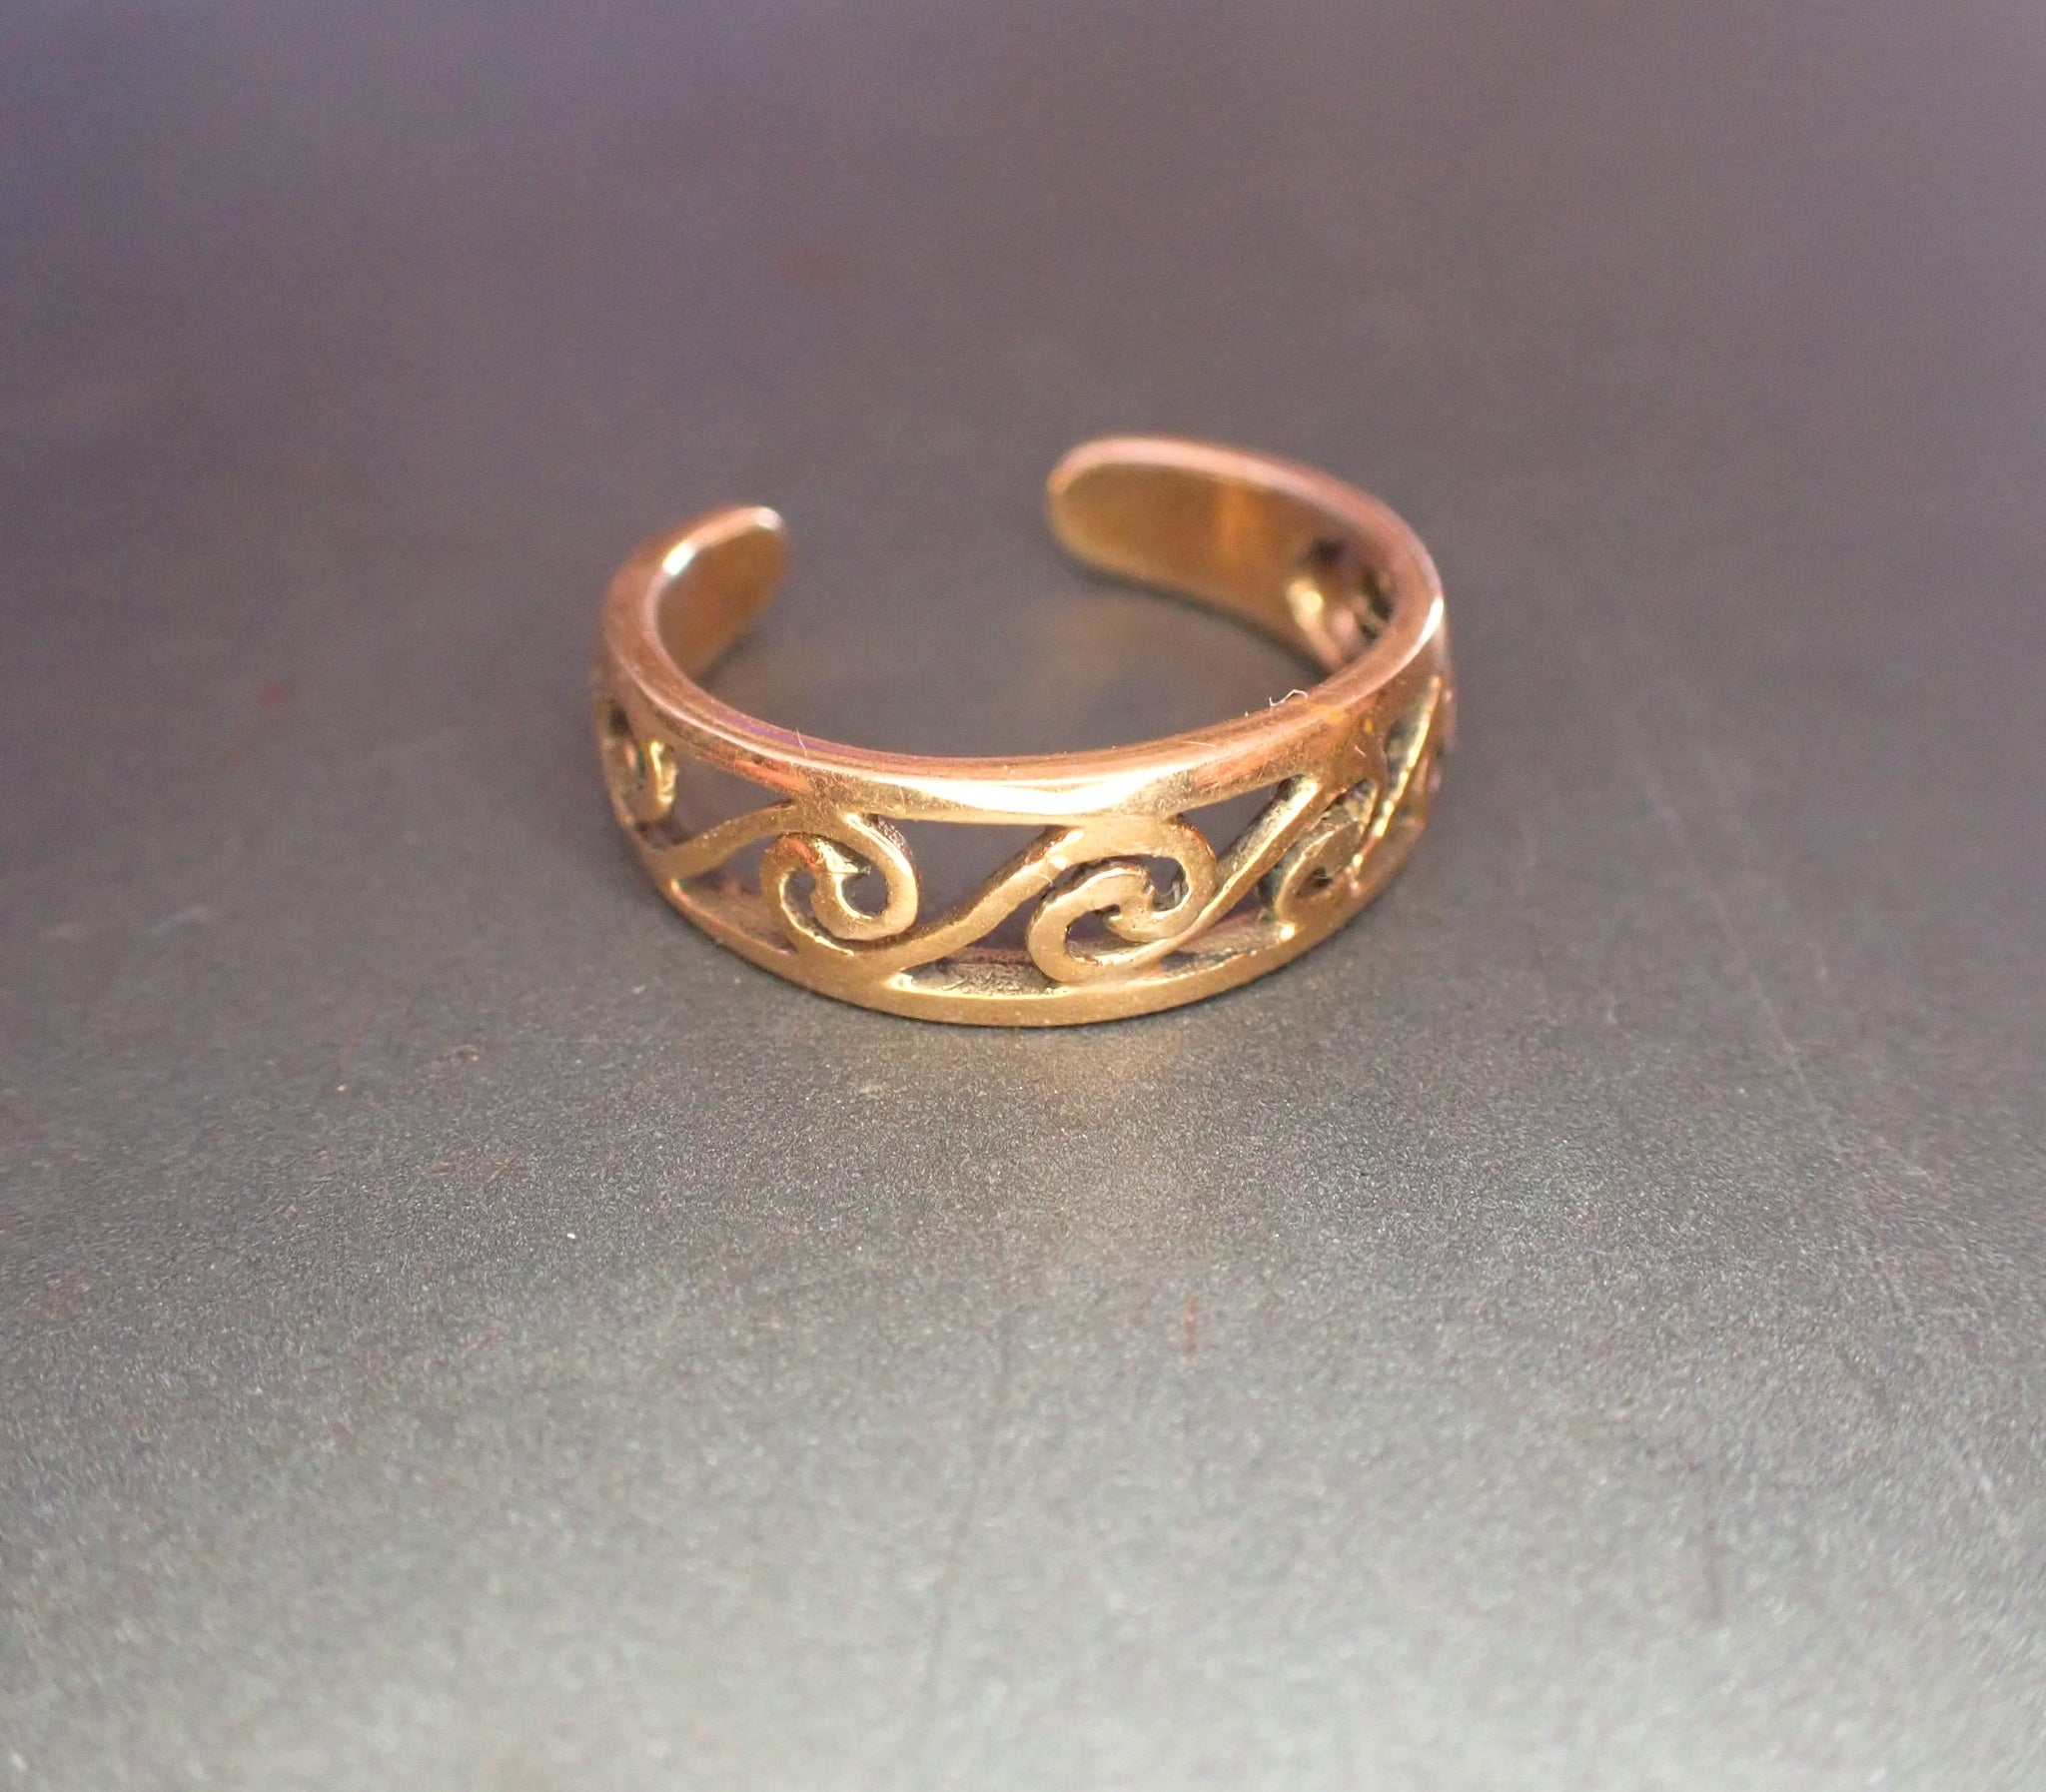 Gold coloured toe ring with swirls